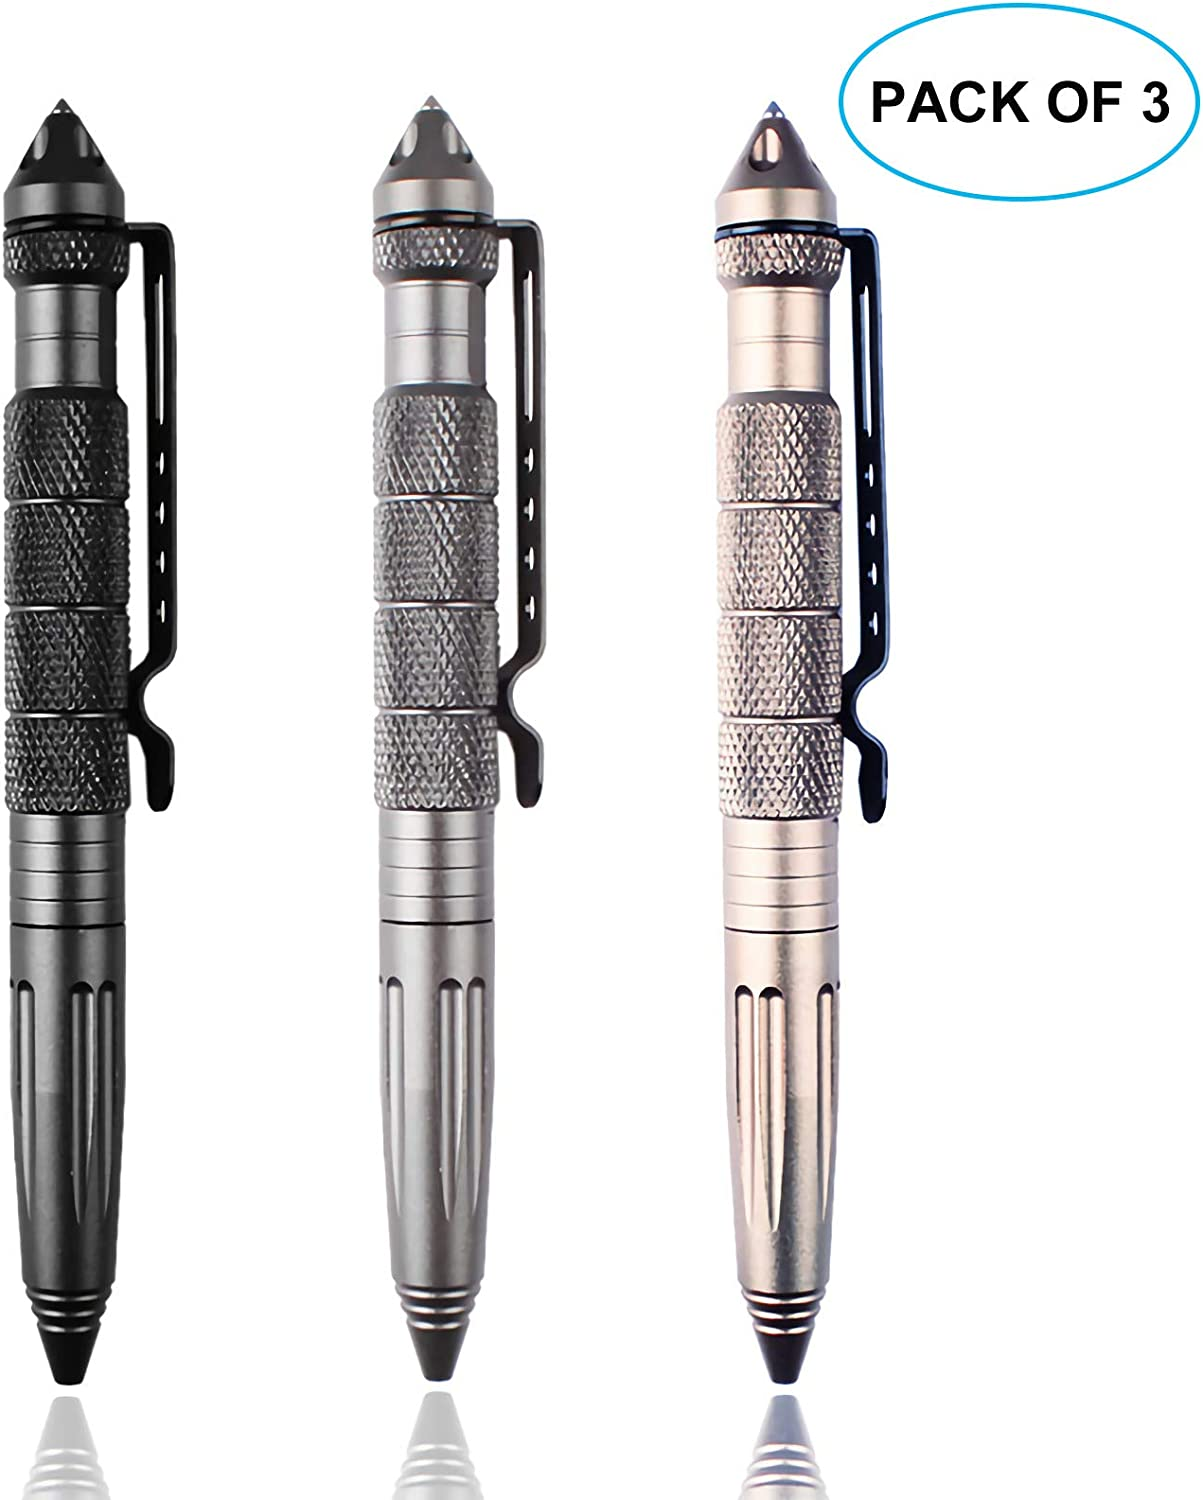 Pack of 3 Aircraft Aluminum Defender Tactical Pen Military or Police Outdoor Survival Tool